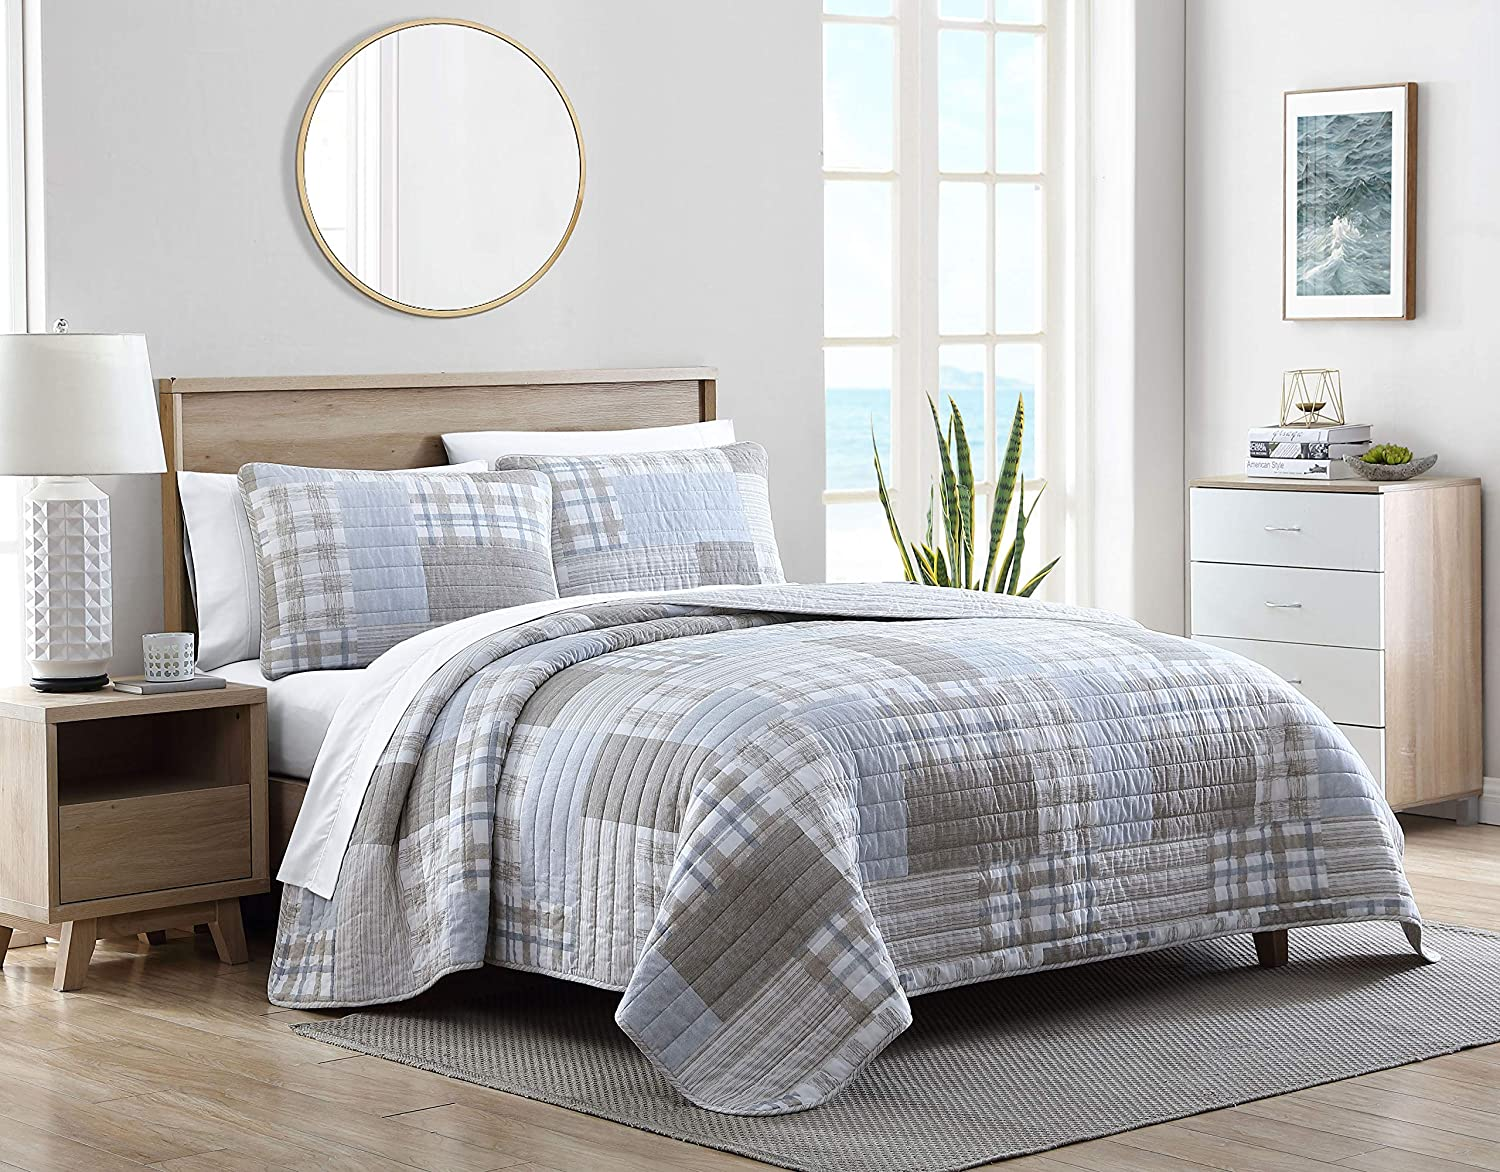 Nautica Home Clement Collection Luxury Ultra Soft Cotton Comforter 3 Piece Set, Stylish Delicate Design for Home Décor, King, Beige